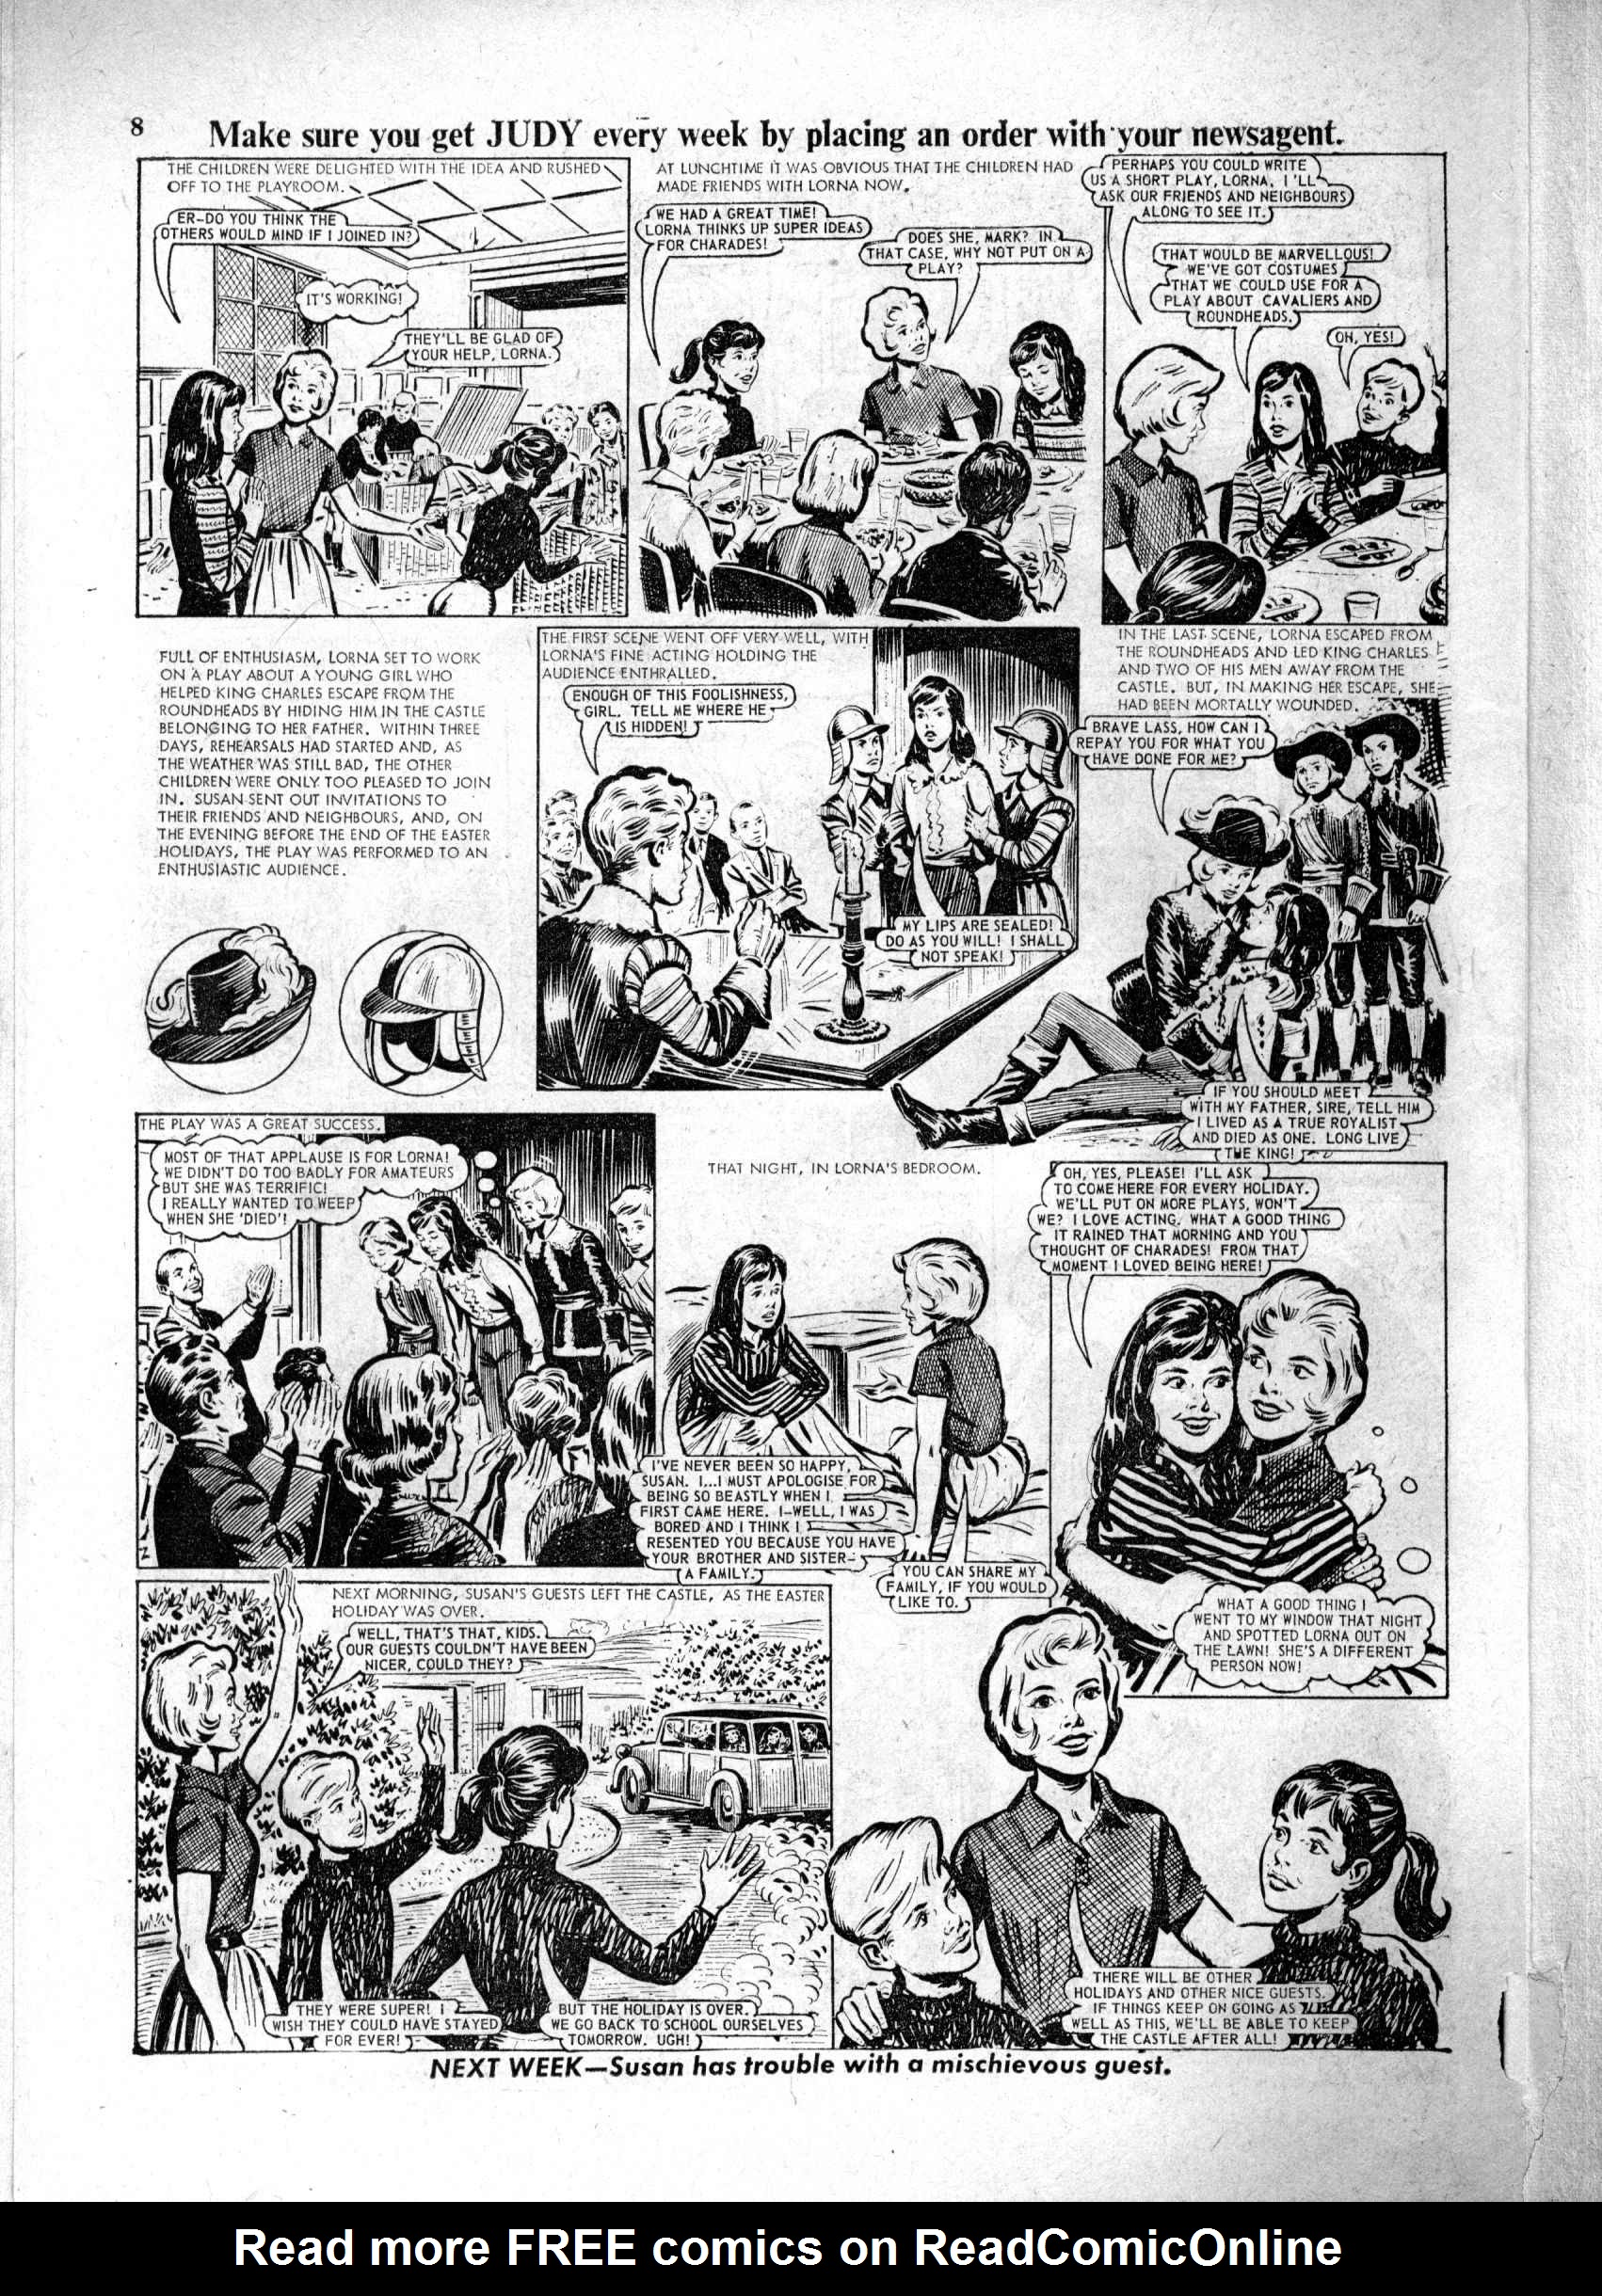 Read online Judy comic -  Issue #229 - 8